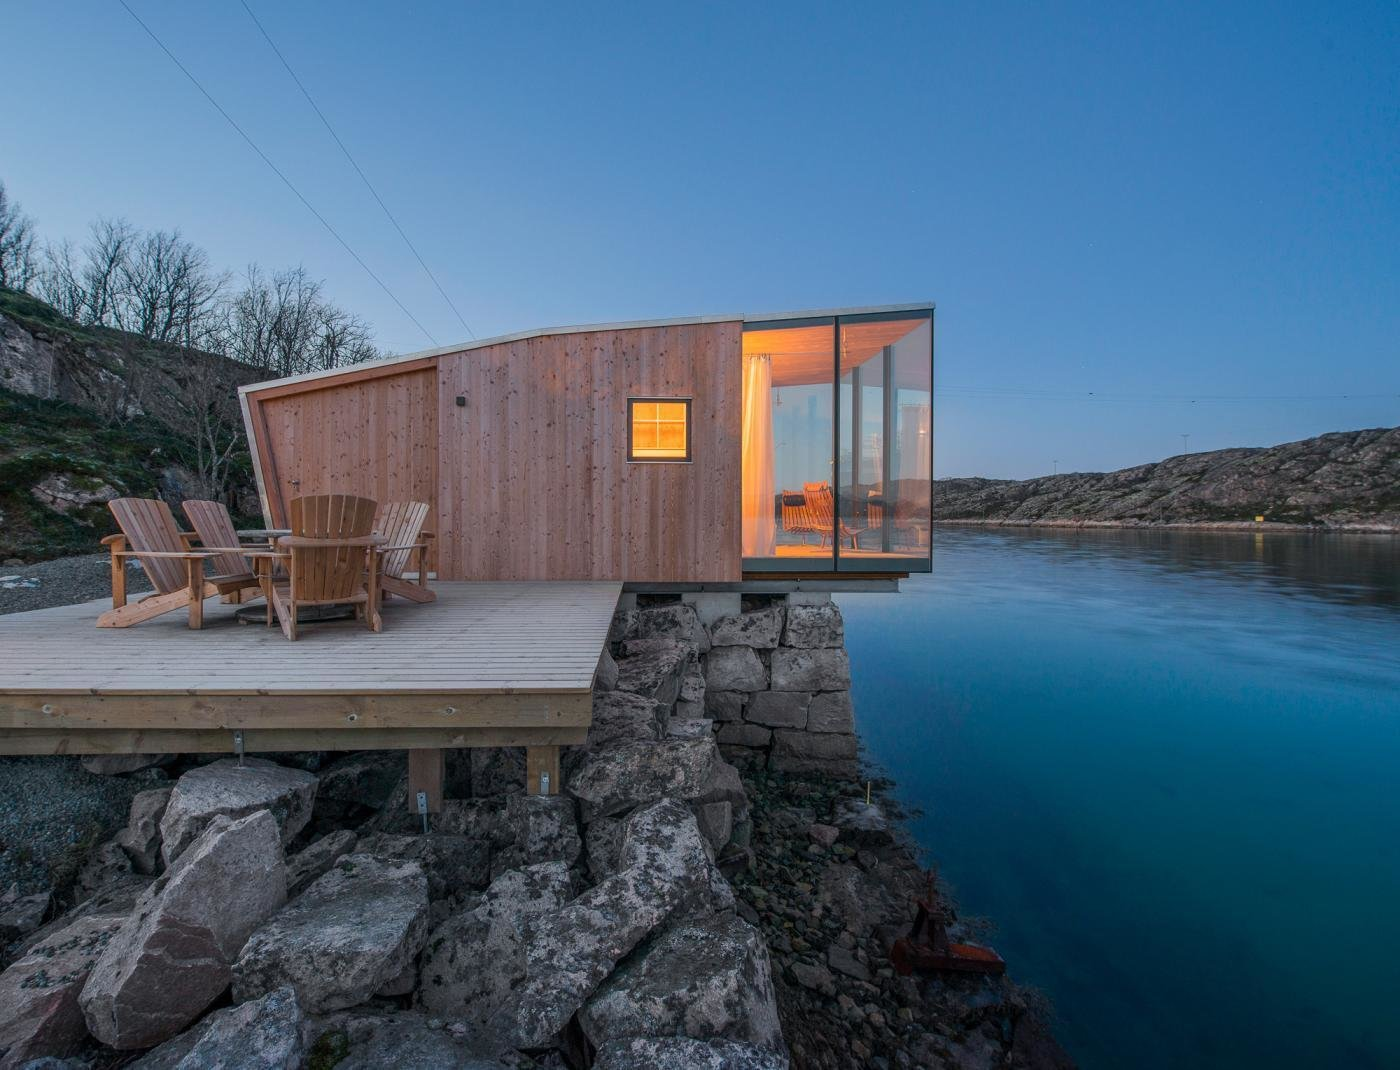 Small, Wood, Exterior, Wood, House, and Glass The cabins are made up of two layers of wood construction. The exterior layer is made of Larch wood with a custom glazing.  Best Exterior Wood Small Photos from Have You Ever Wanted to Stay in a Norwegian Sea Cabin?